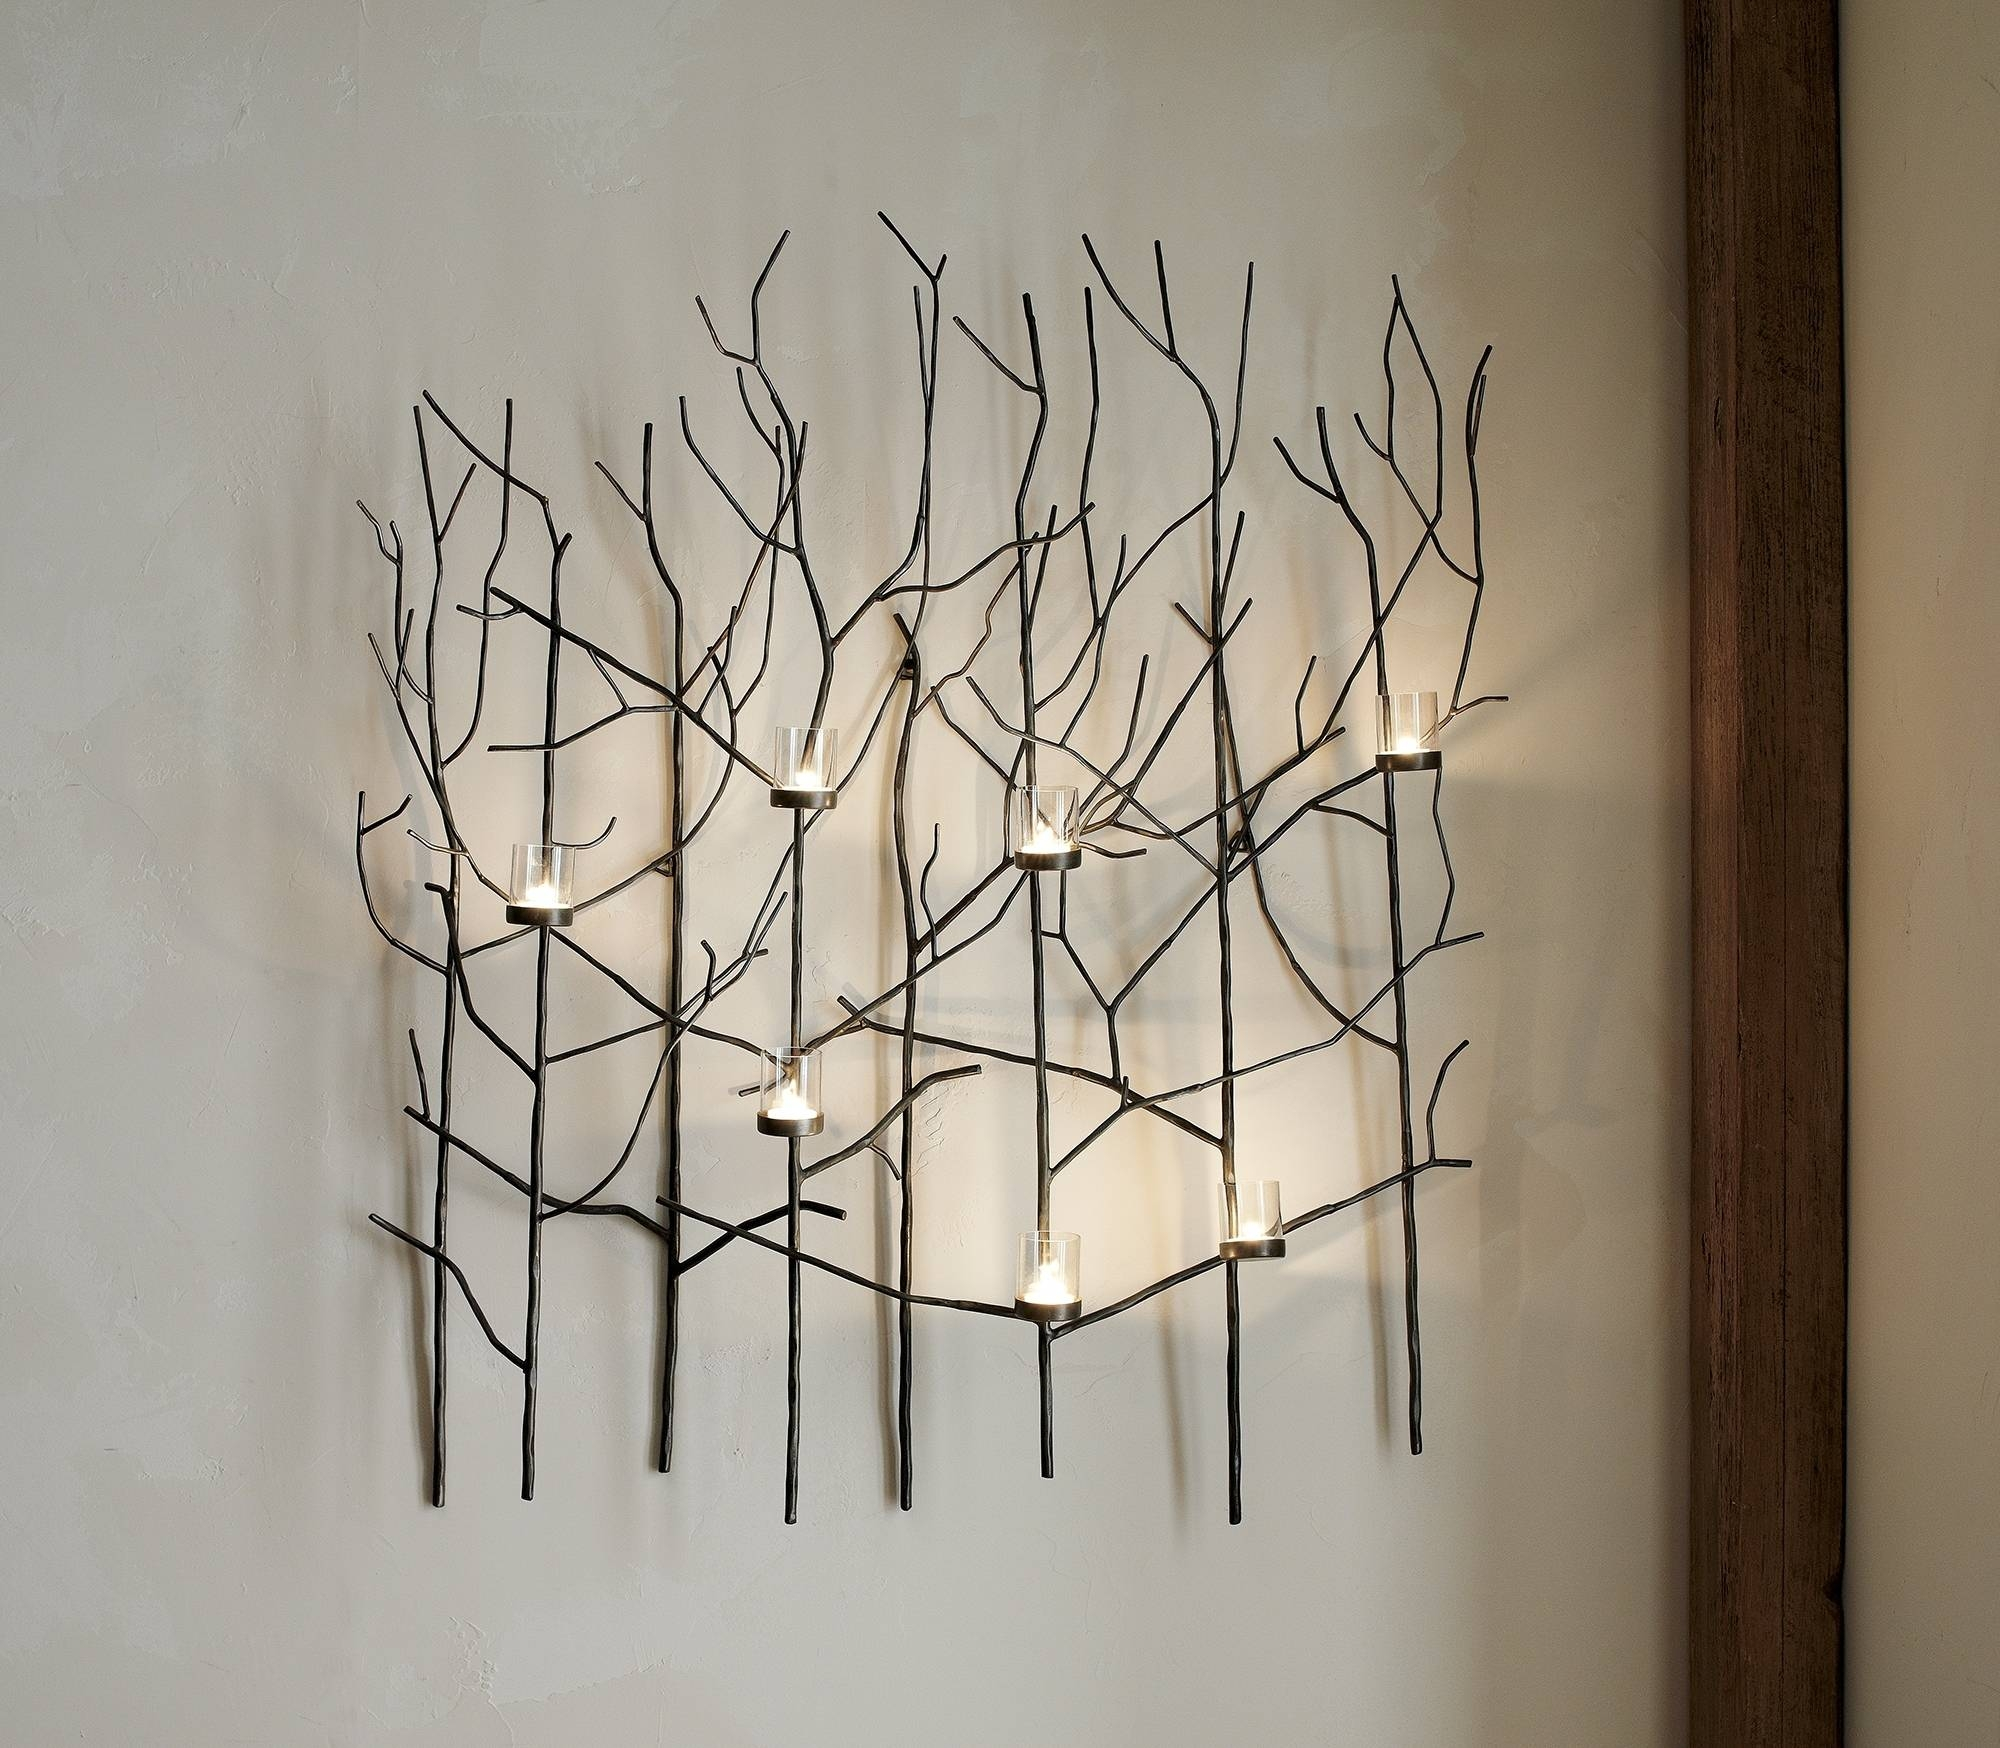 Wall Ideas Tealight Candle Holder Wall Decor Wall Art : Metal Wall Regarding 2017 Metal Wall Art With Candles (View 19 of 20)